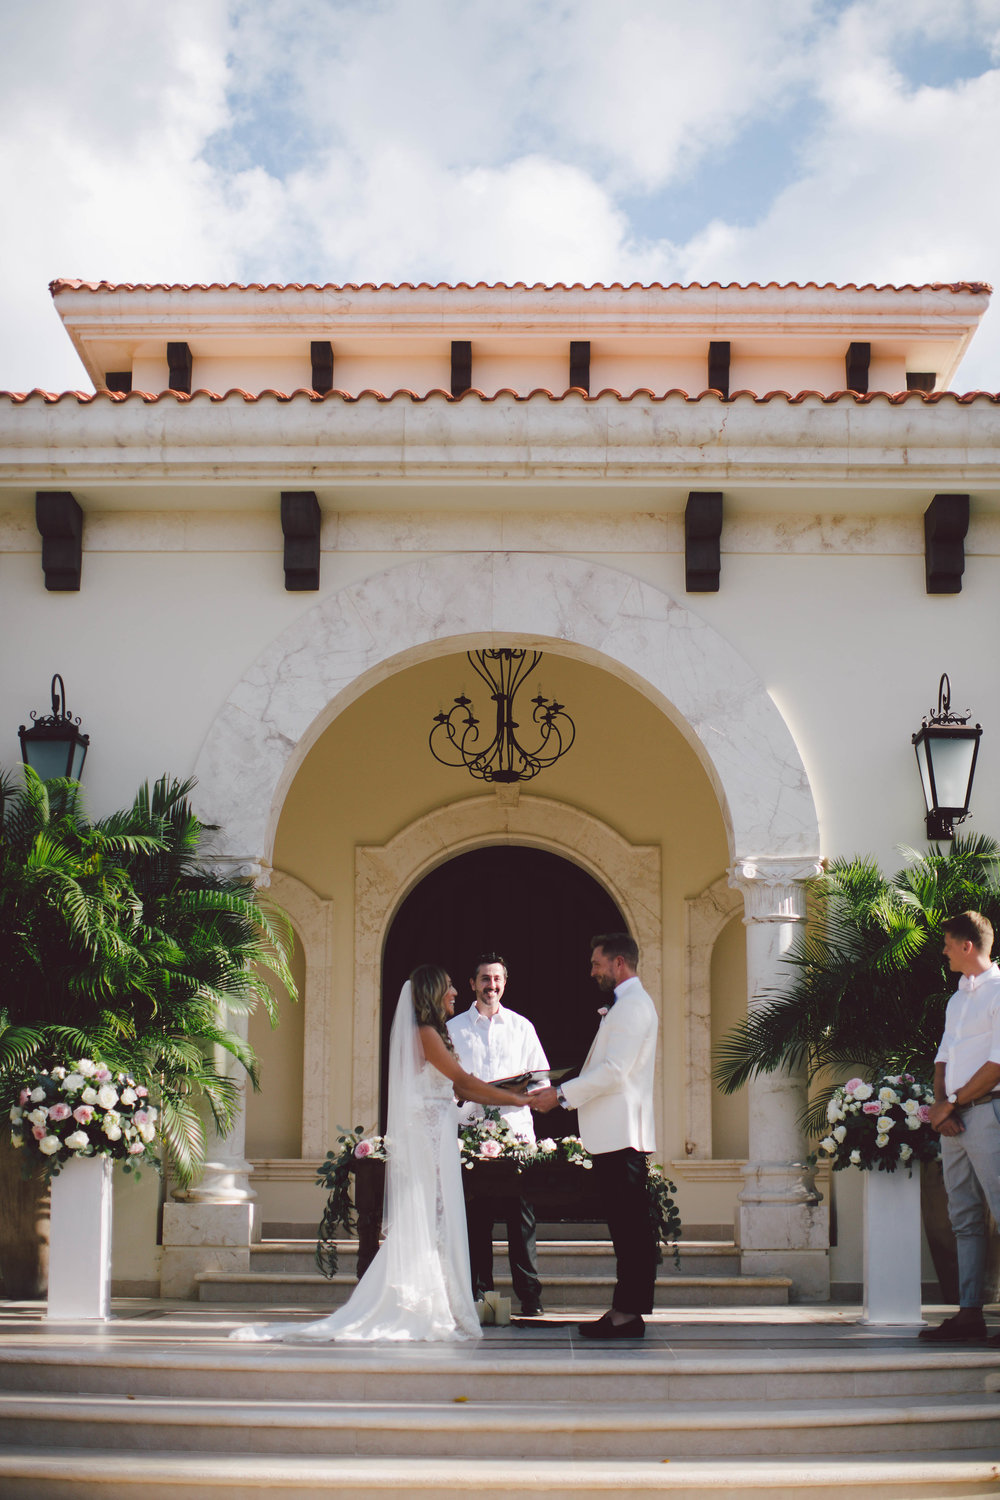 mexico_wedding_cancun_villa_la_joya_evangeline_lane_044.jpg